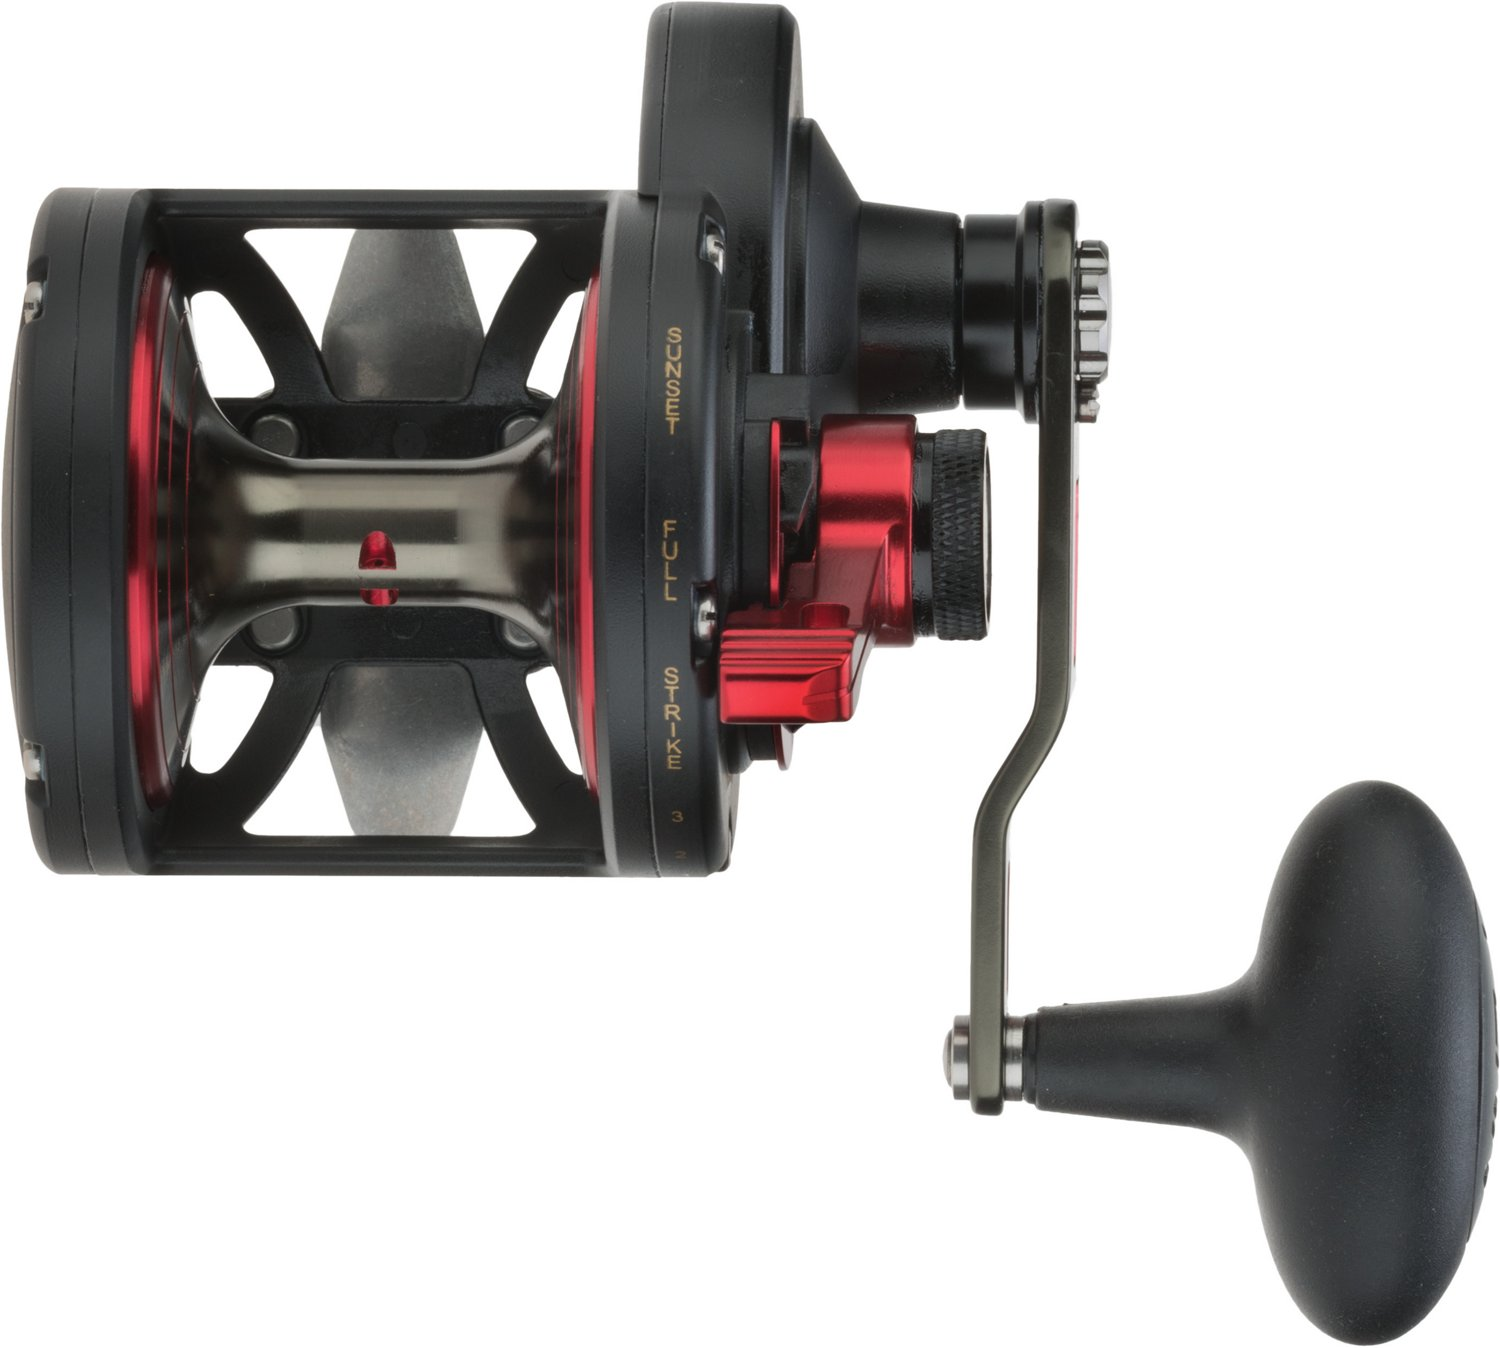 PENN Fathom Lever Drag Reel Right-handed - view number 1